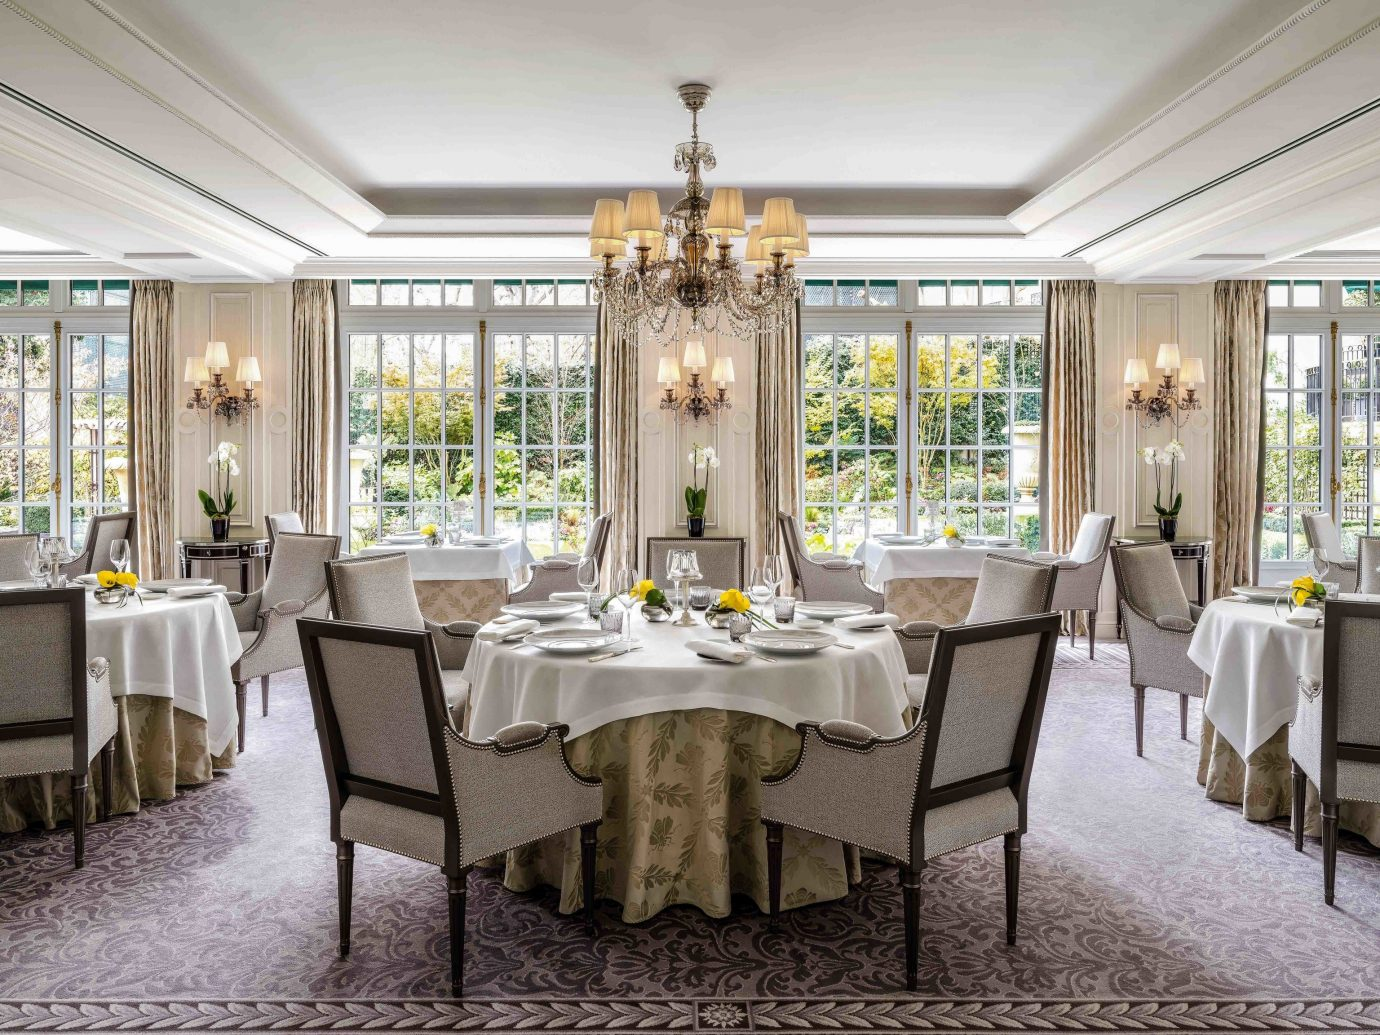 Food + Drink Romance indoor floor window table chair dining room ceiling room restaurant interior design furniture home real estate estate function hall Dining several dining table